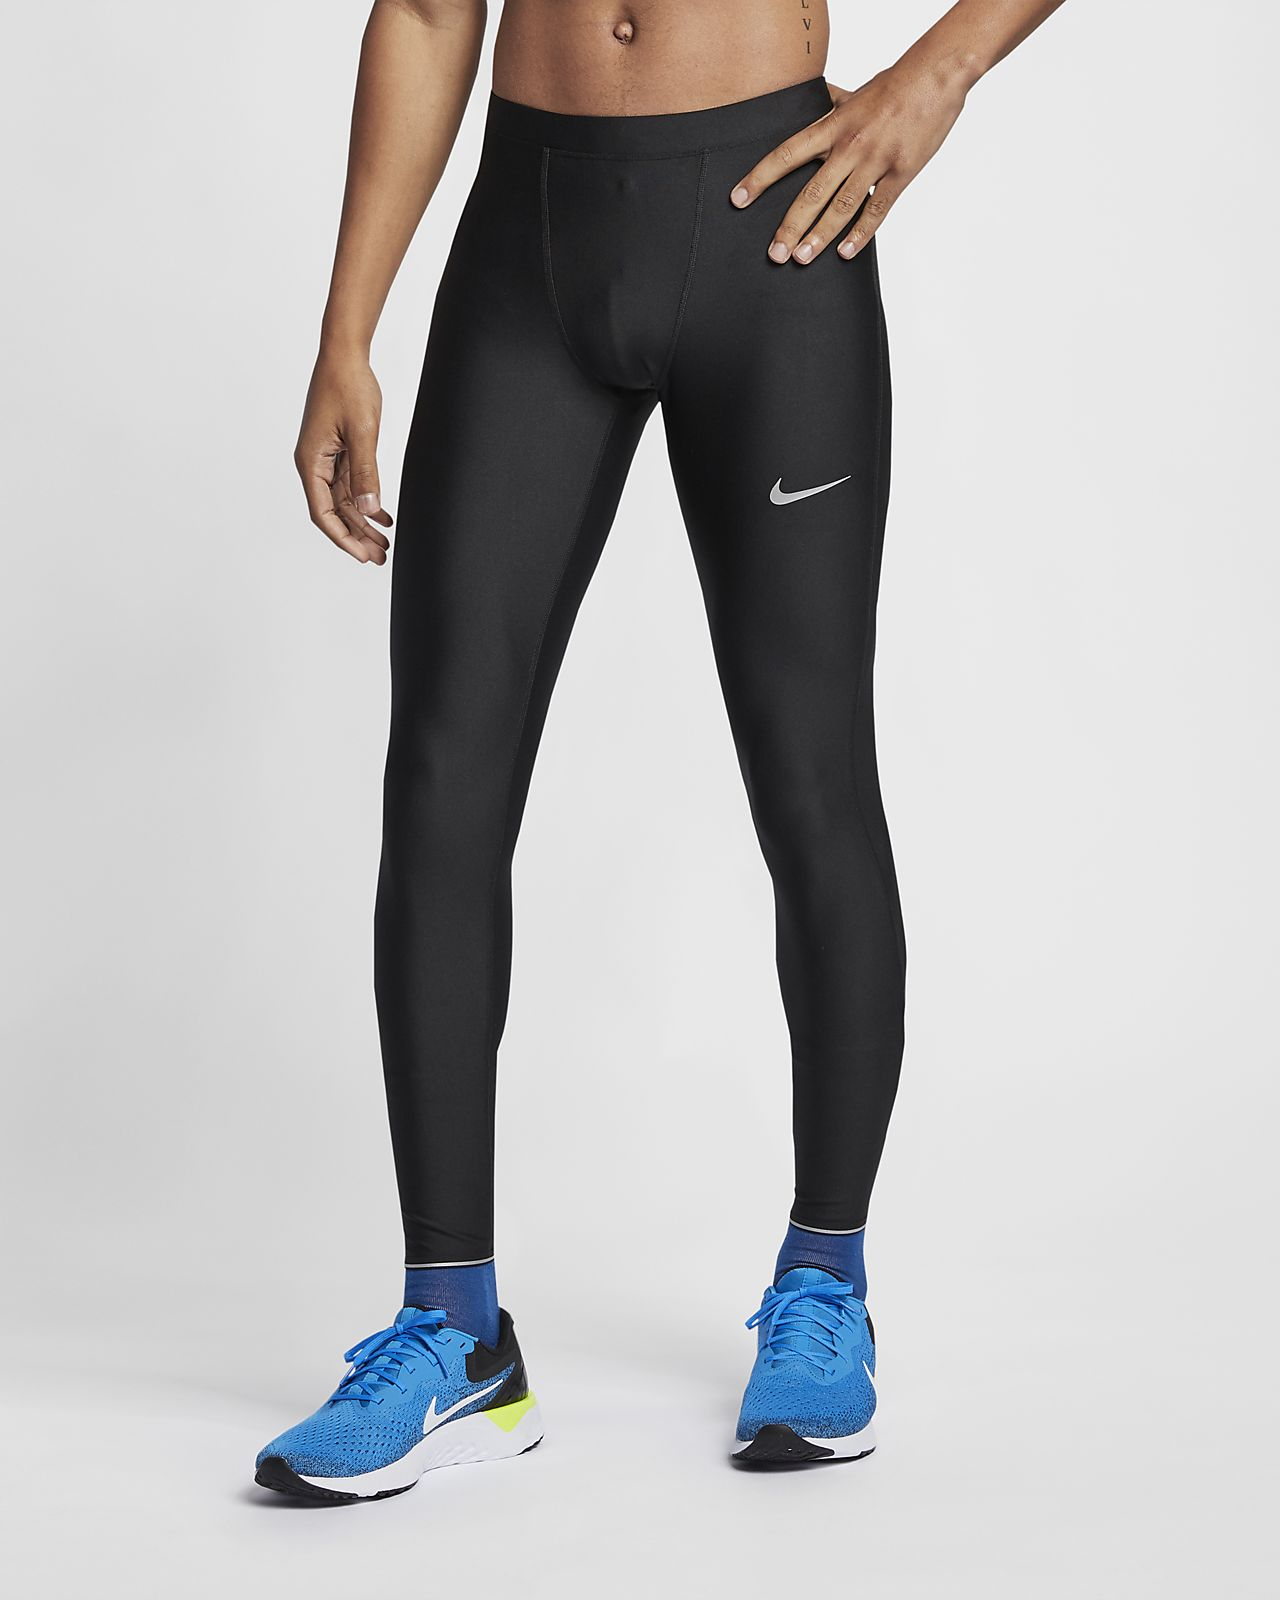 nike legging with pockets